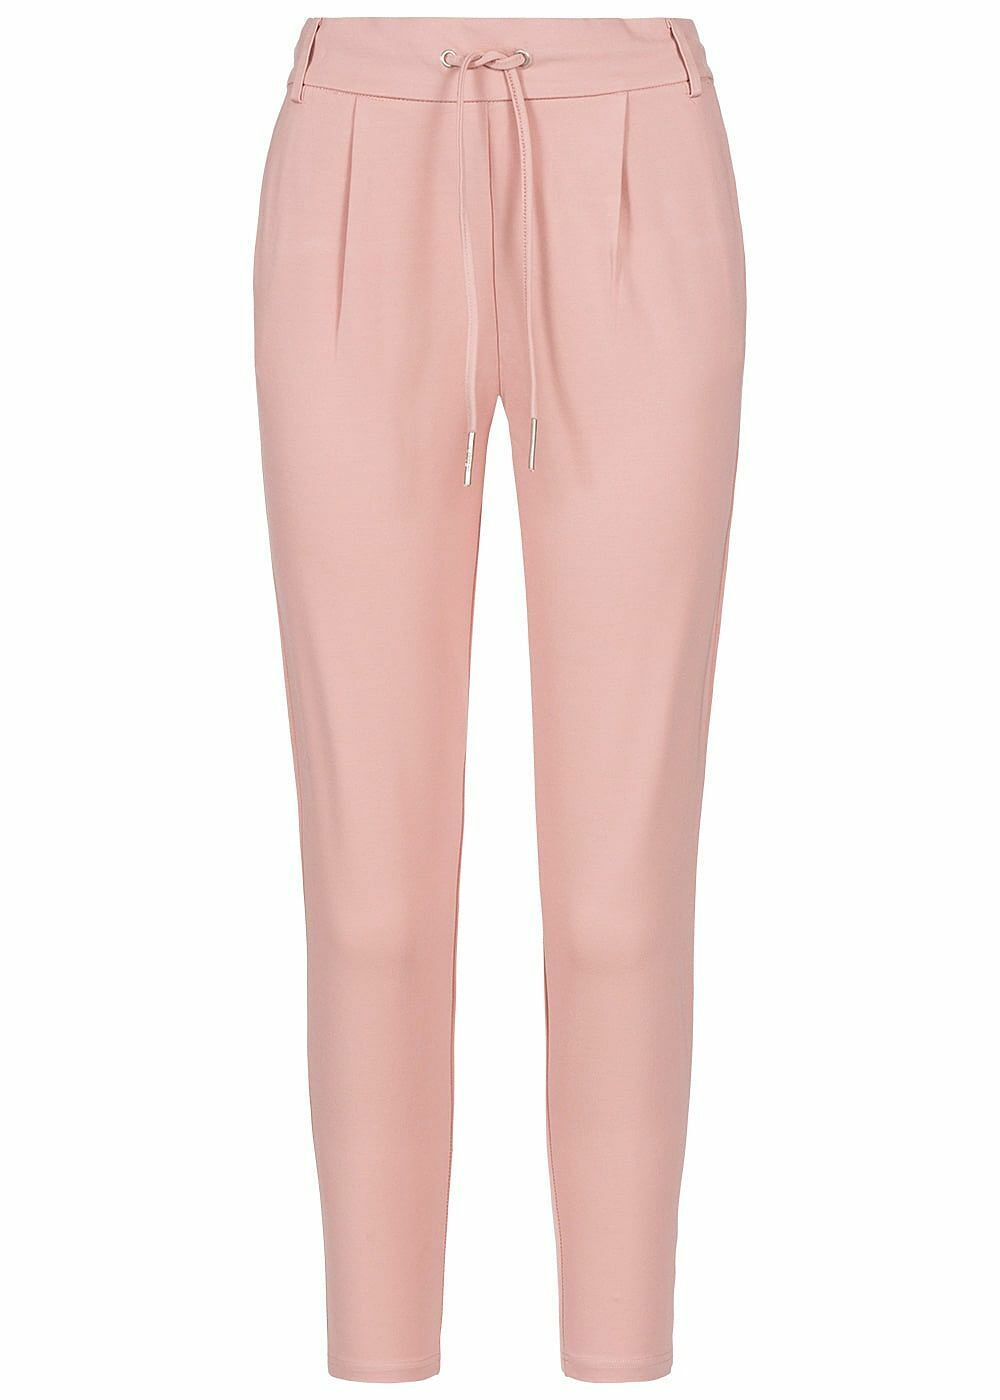 40% OFF B19072913 Damen Only Hose Poptrash Pants 2-Pockets Tunnelzug smoke rosa